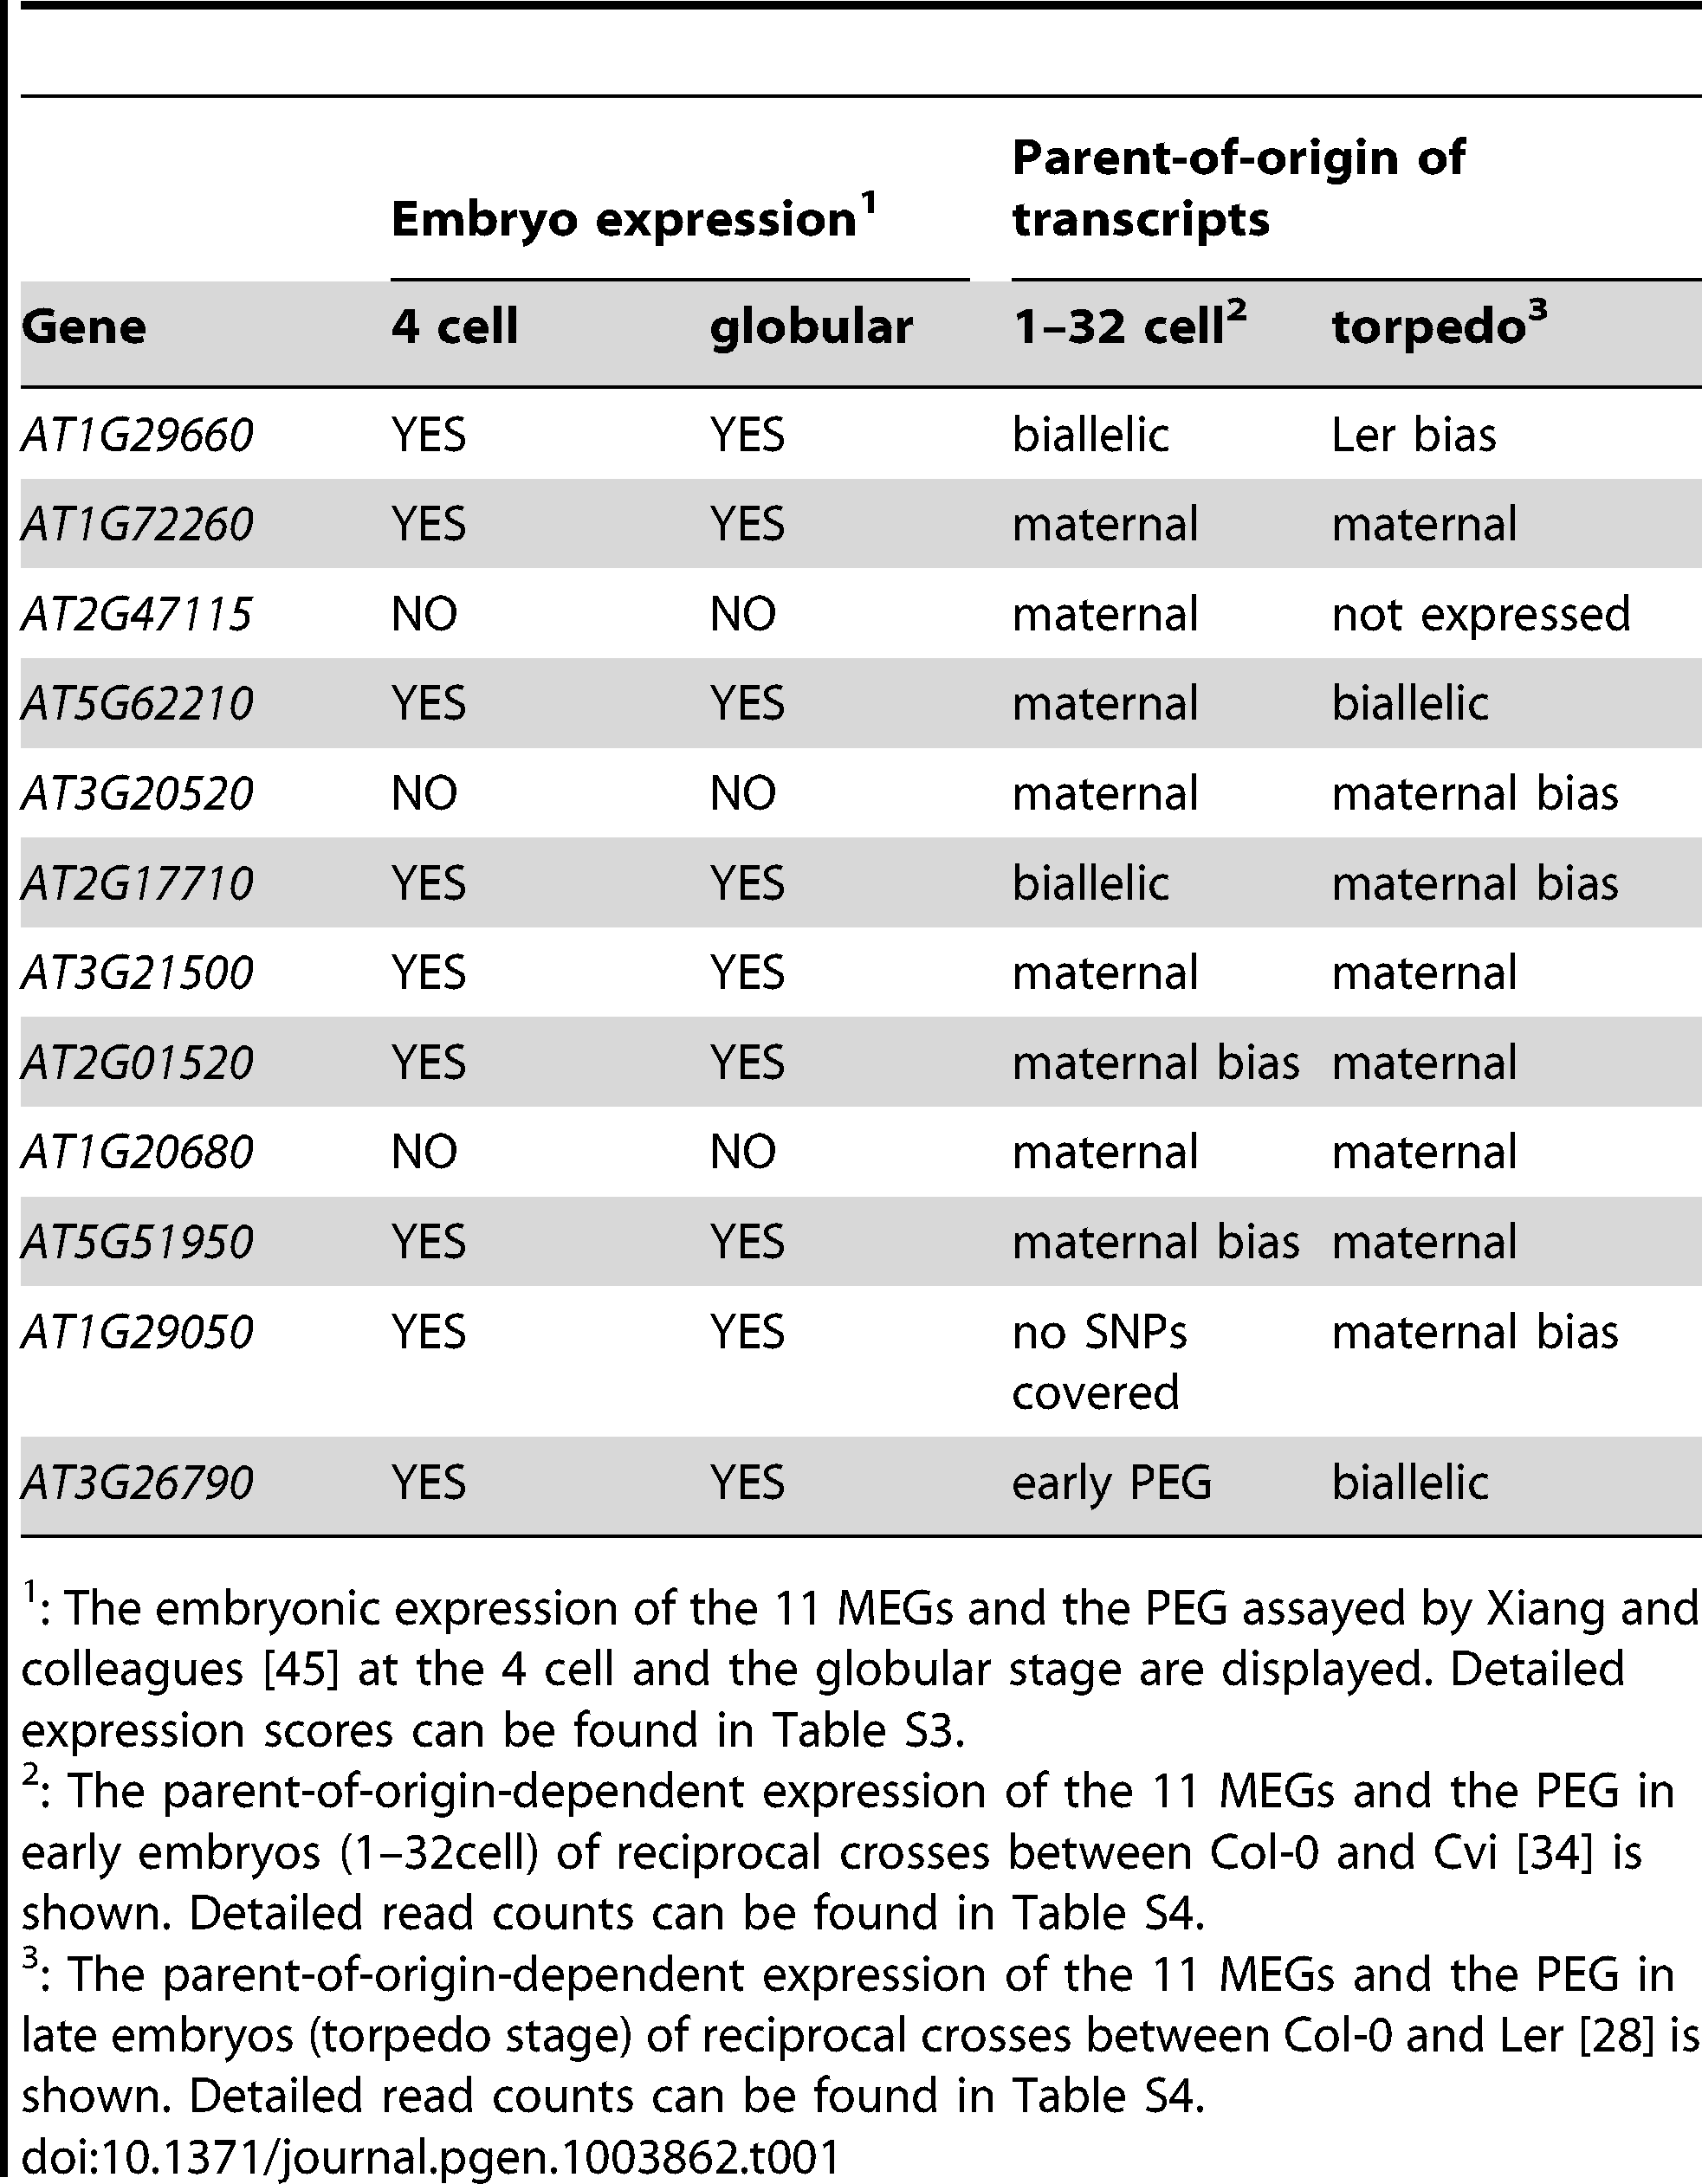 Embryonic expression and parent-of-origin expression of the confirmed MEGs and the PEG in other studies.